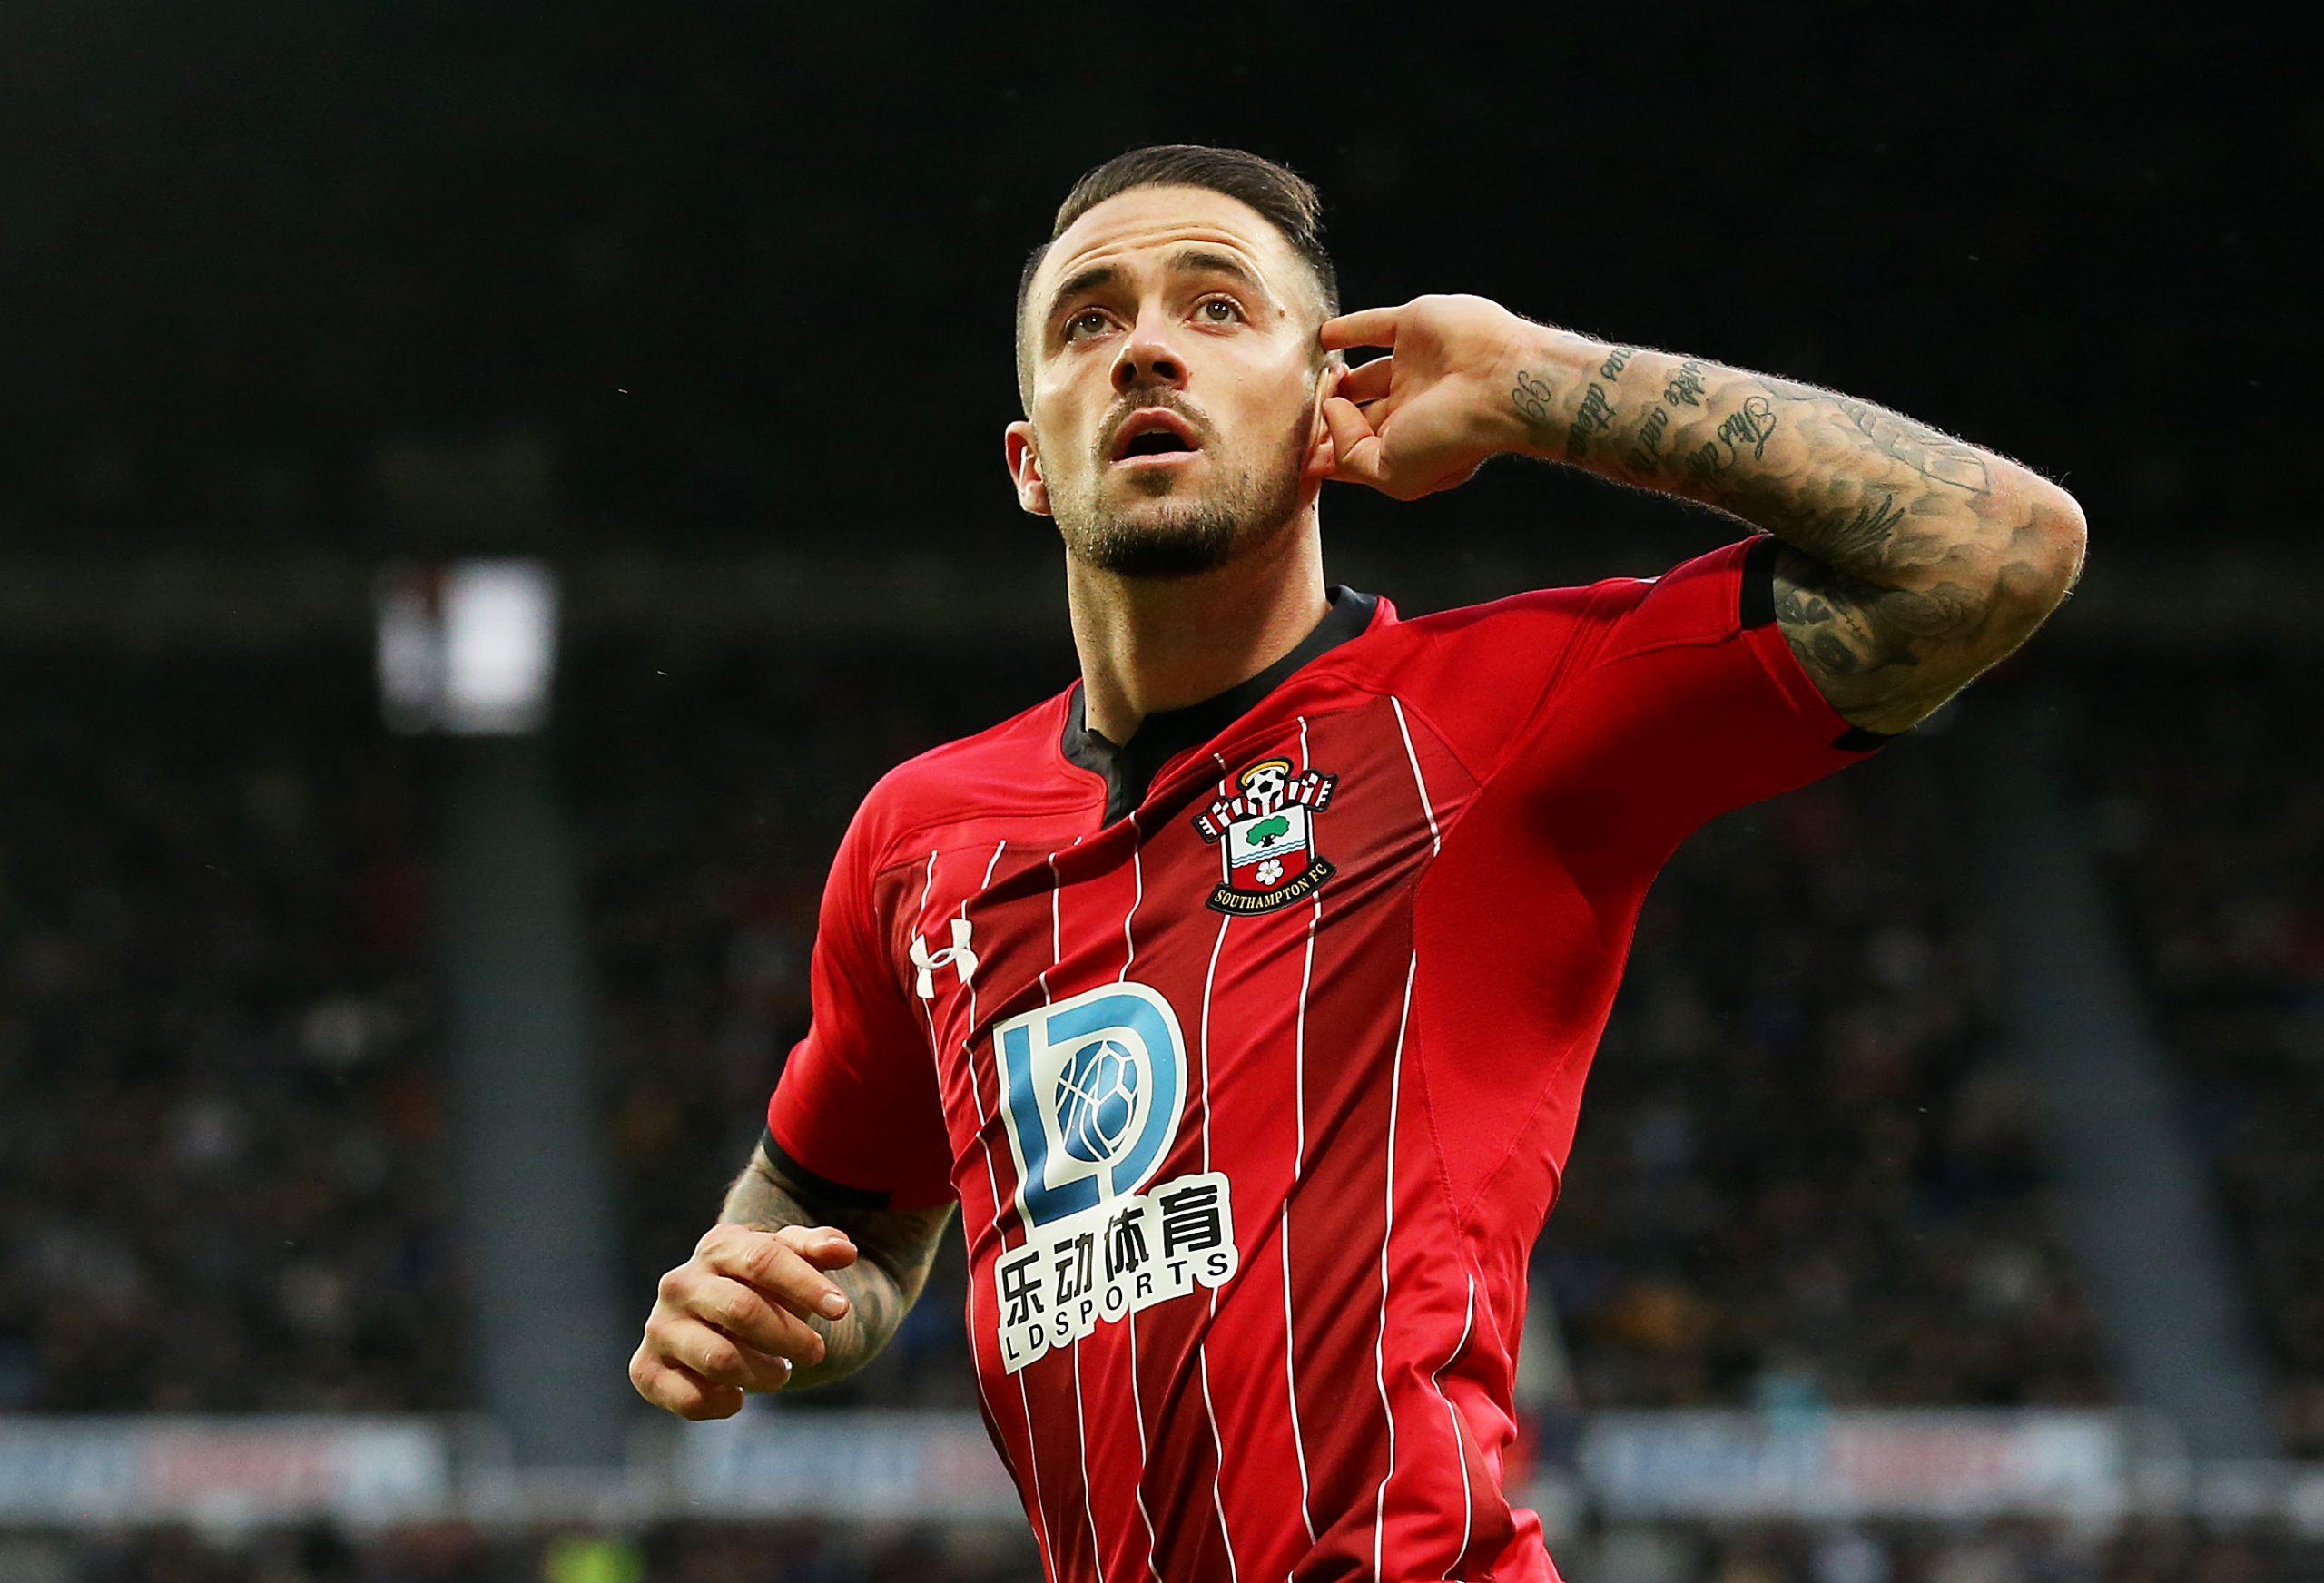 Southampton striker Danny Ings is linked with a transfer move to Tottenham Hotspur in the summer.